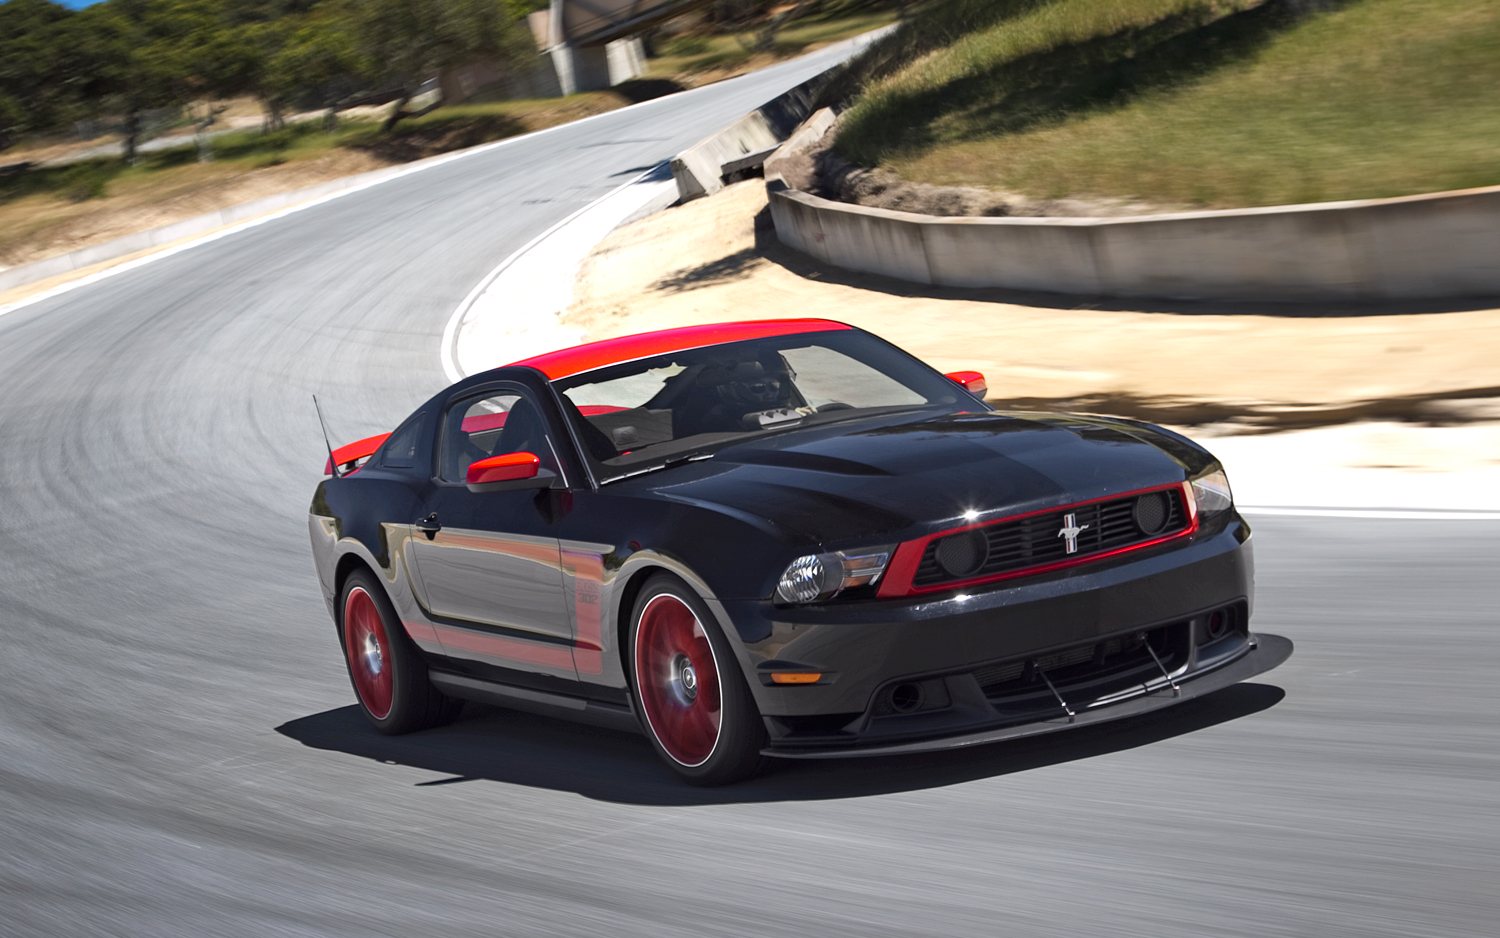 2012 ford mustang boss 302 141 06 motortrend